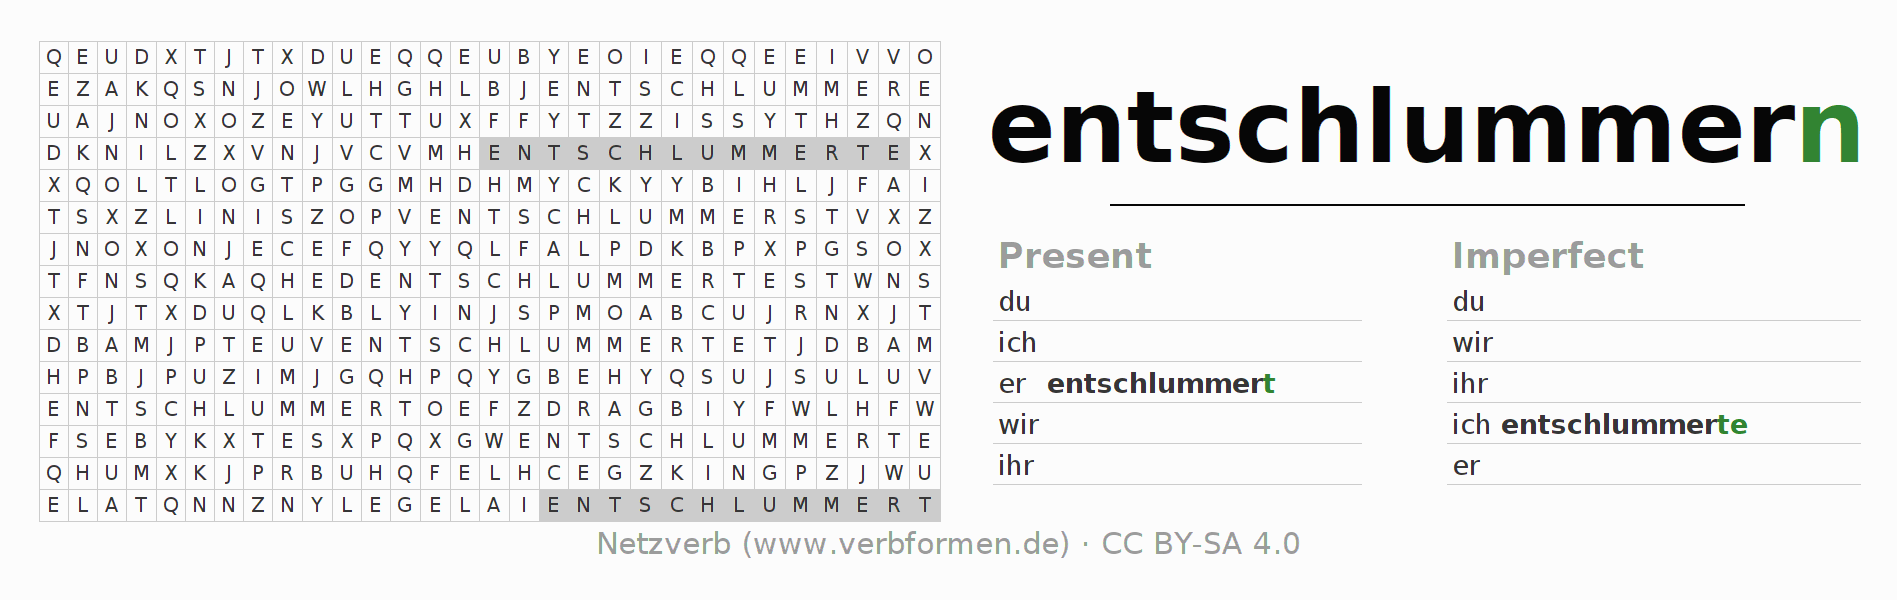 Word search puzzle for the conjugation of the verb entschlummern